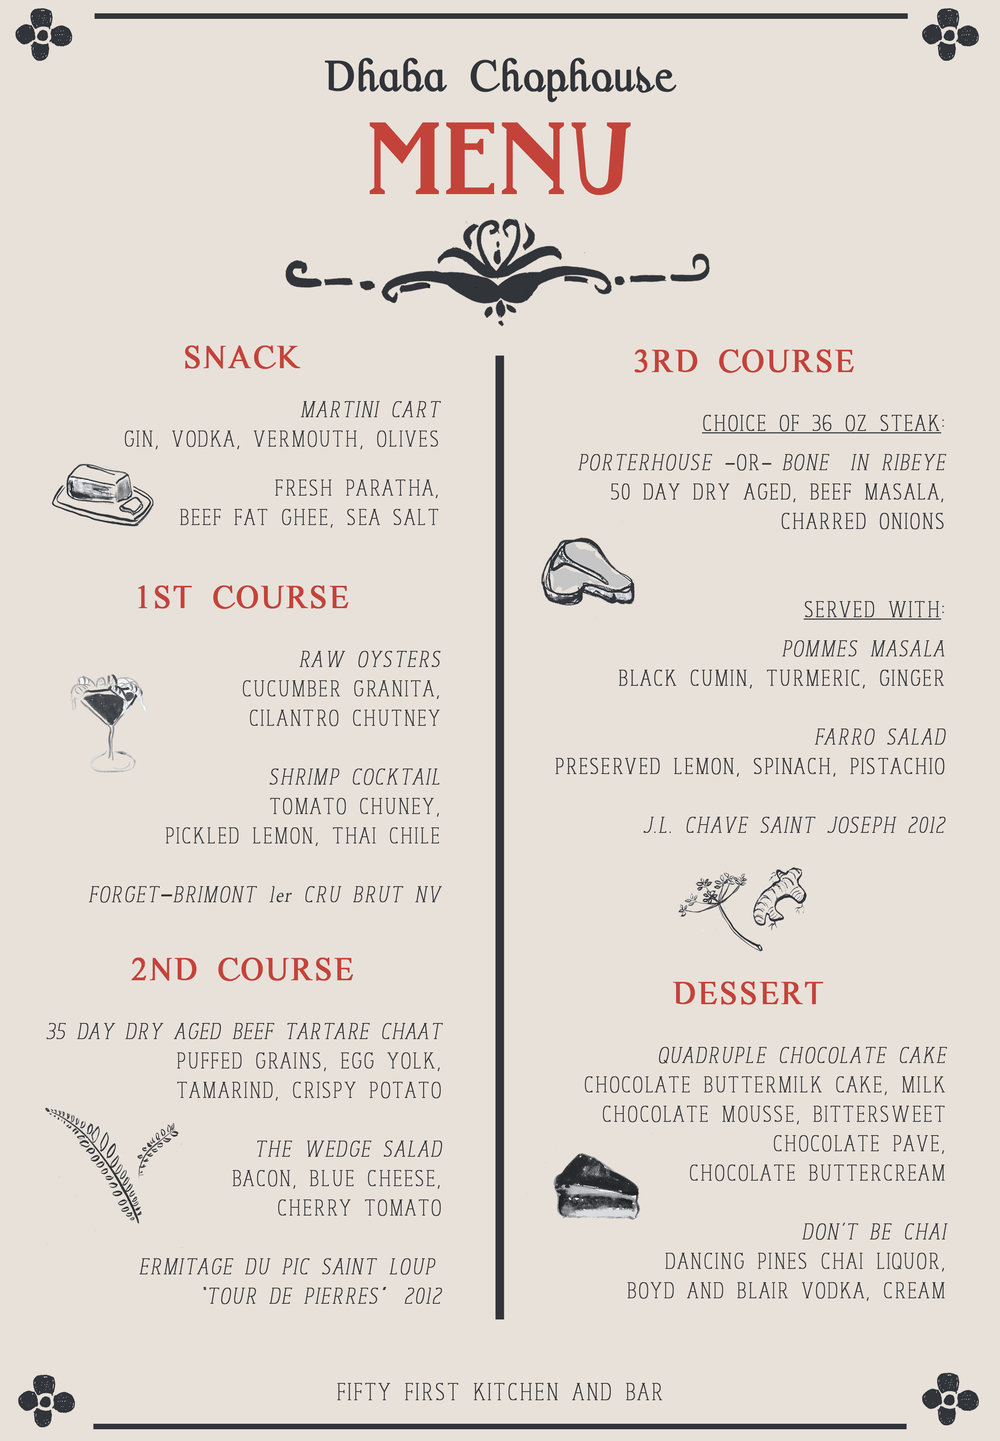 Dhaba Chophouse Menu.jpg